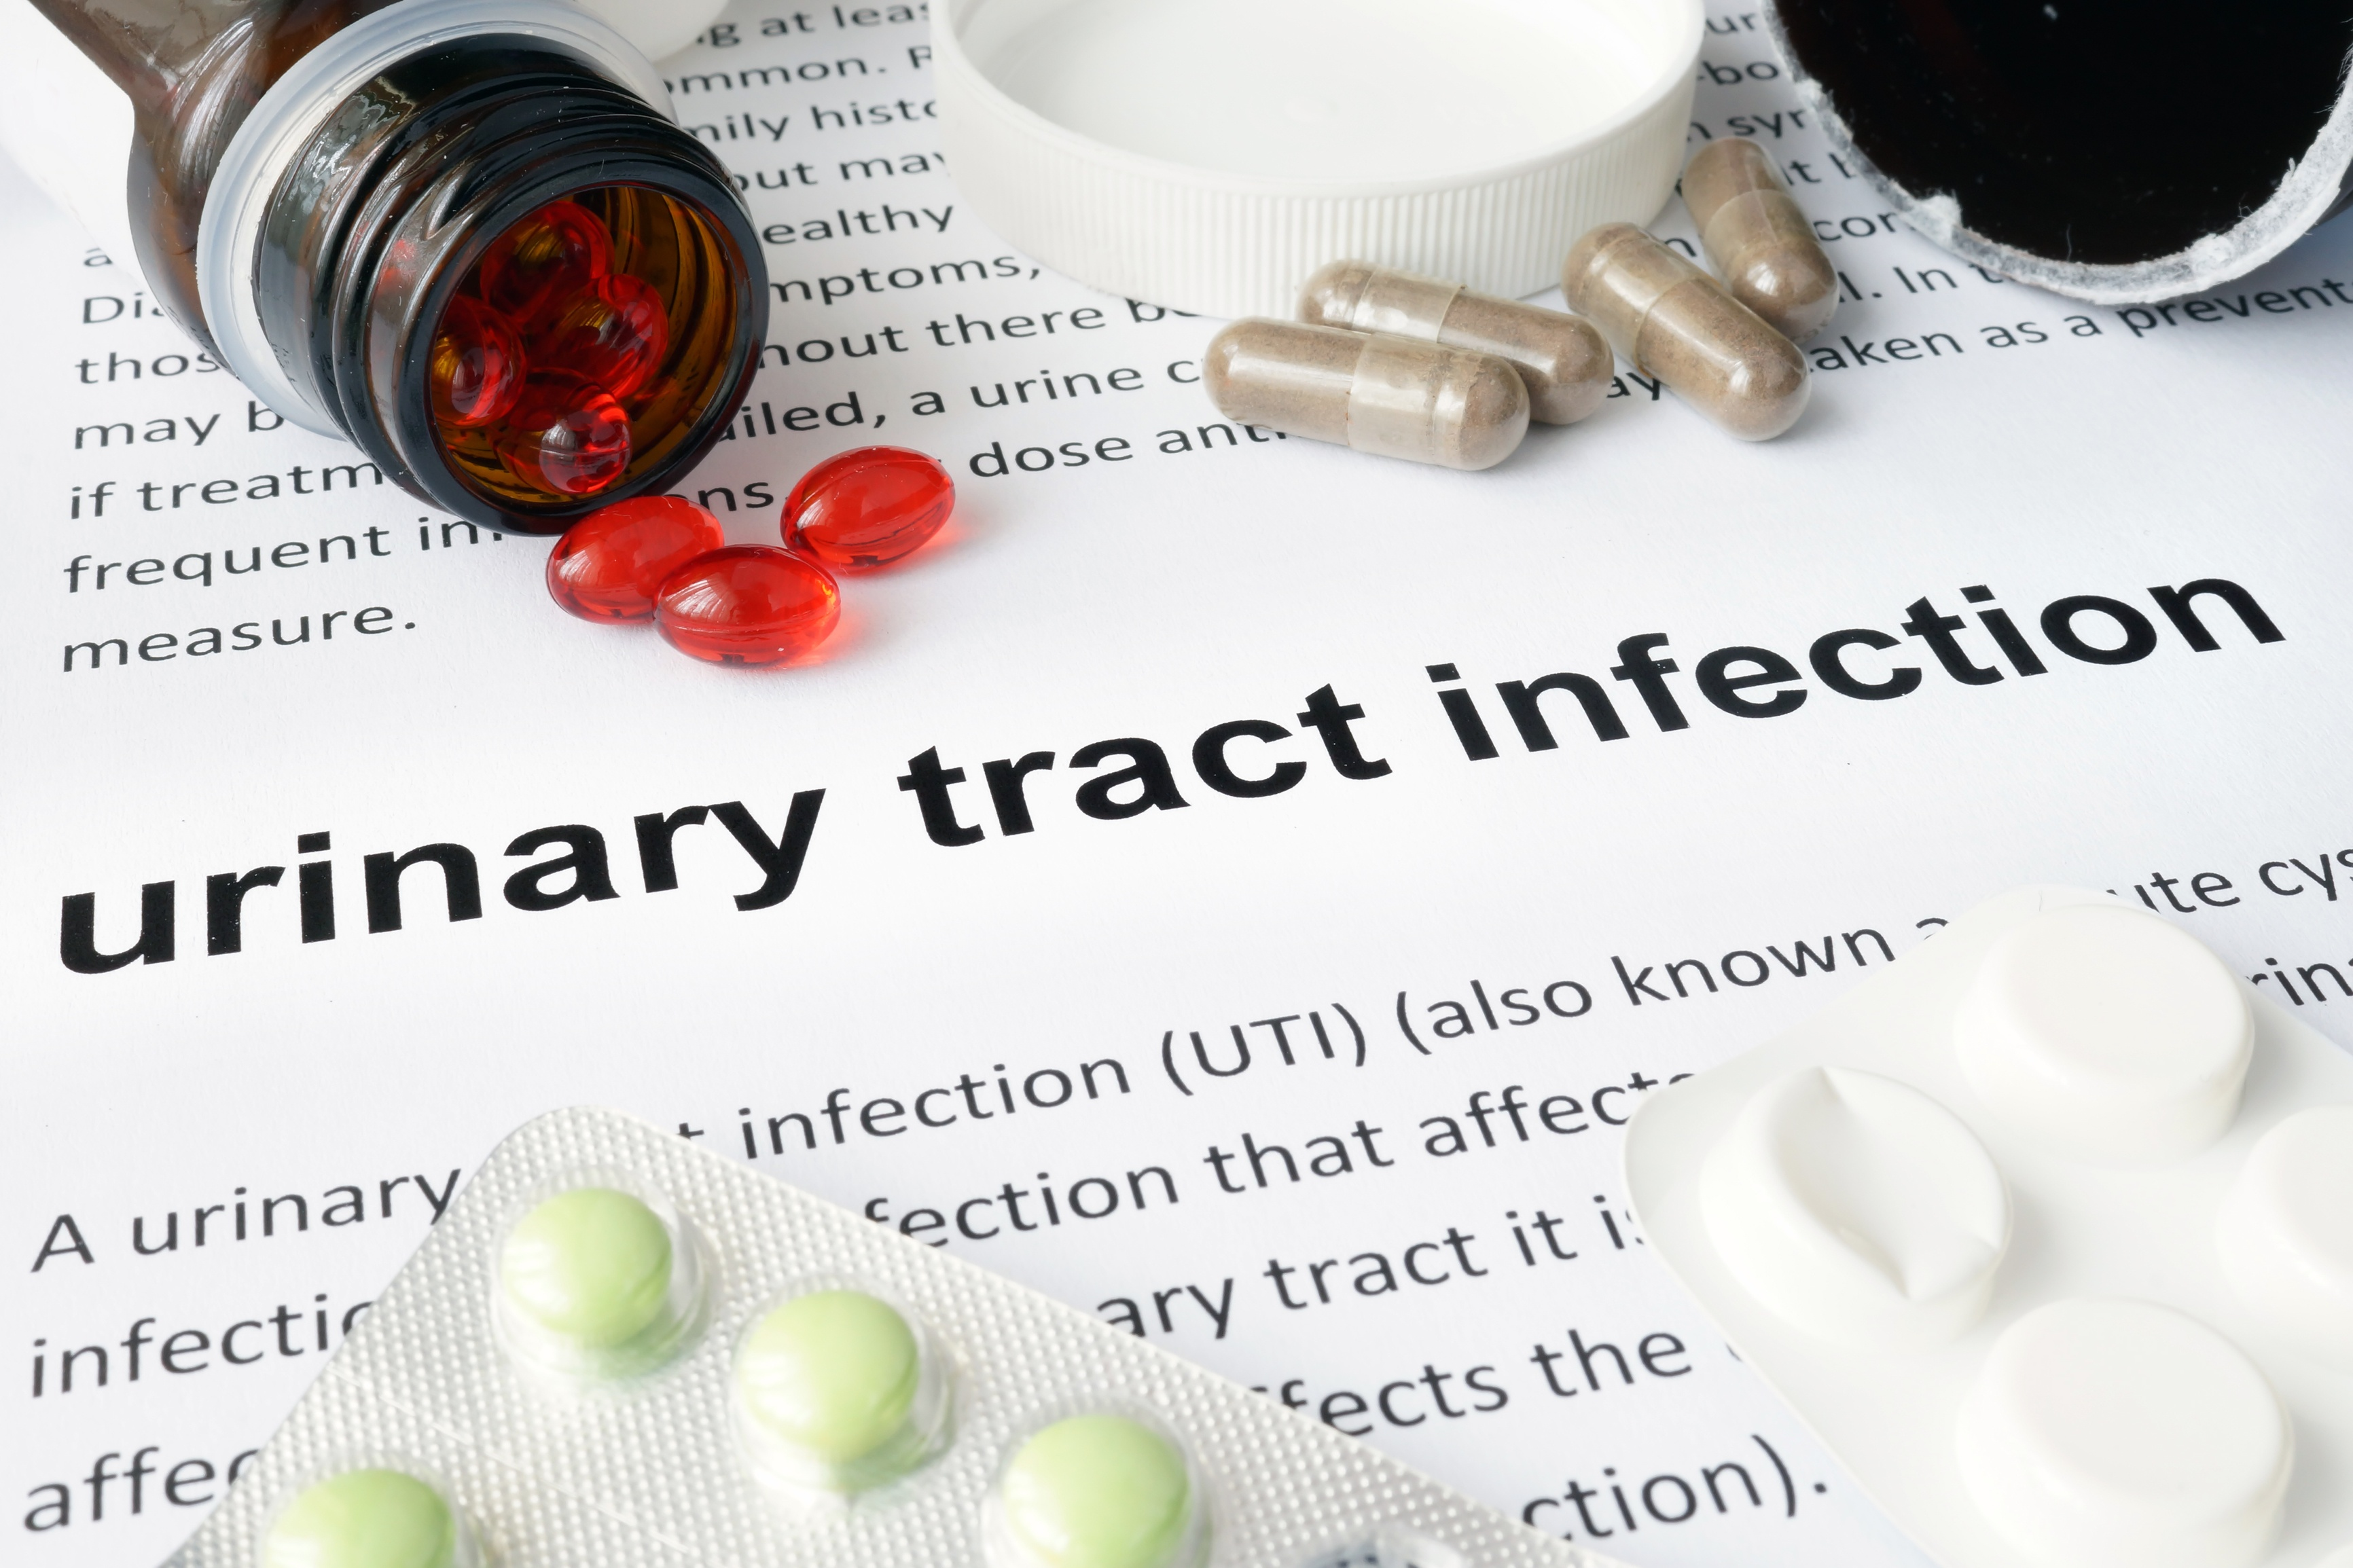 Pediatric Urinary Tract Infection